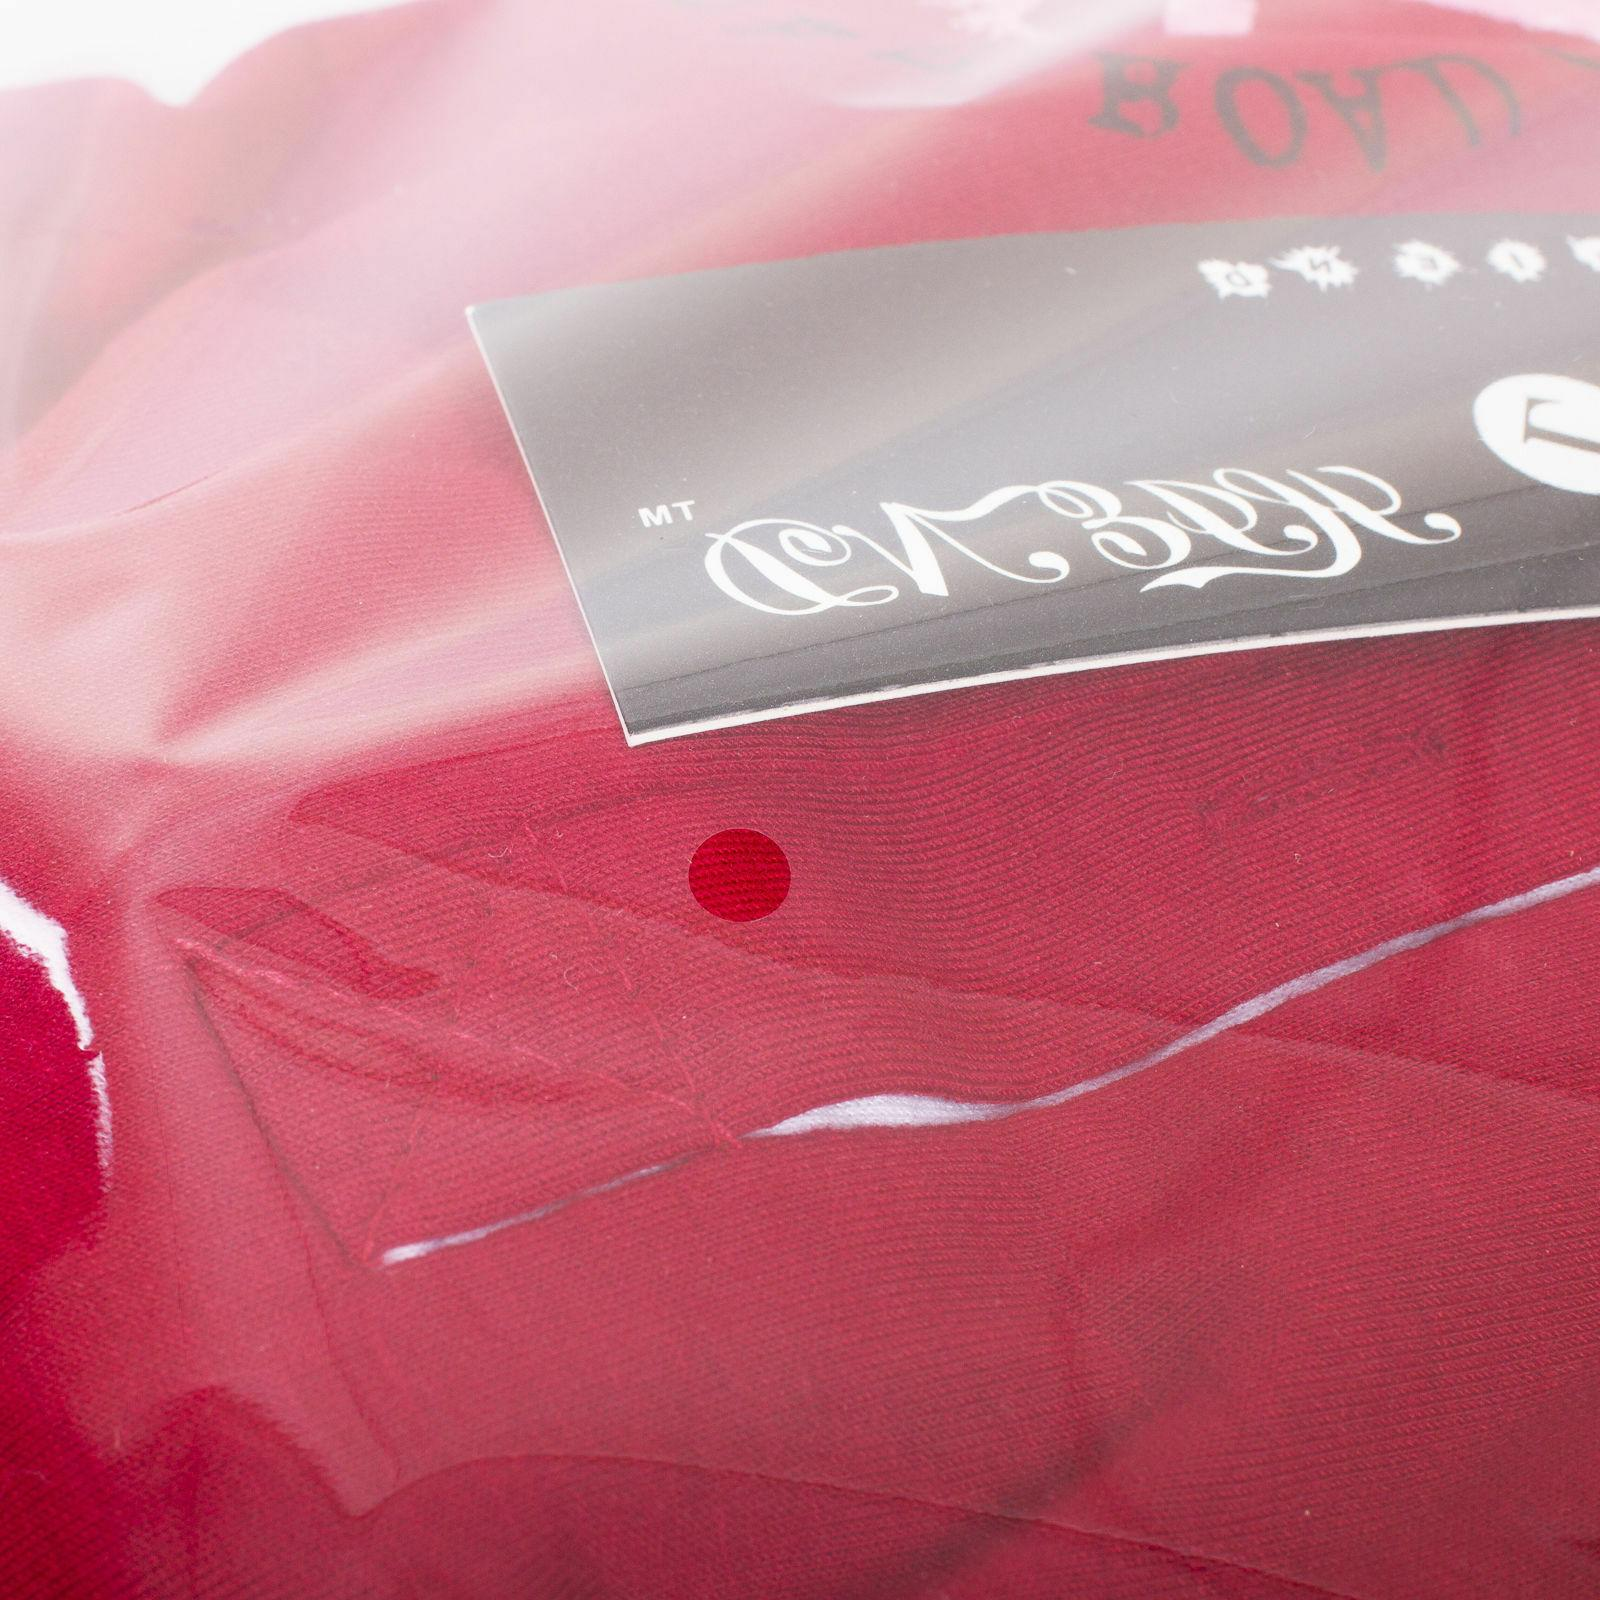 CLEAR GARMENTS PACKAGING OPP NOTICE CELLO